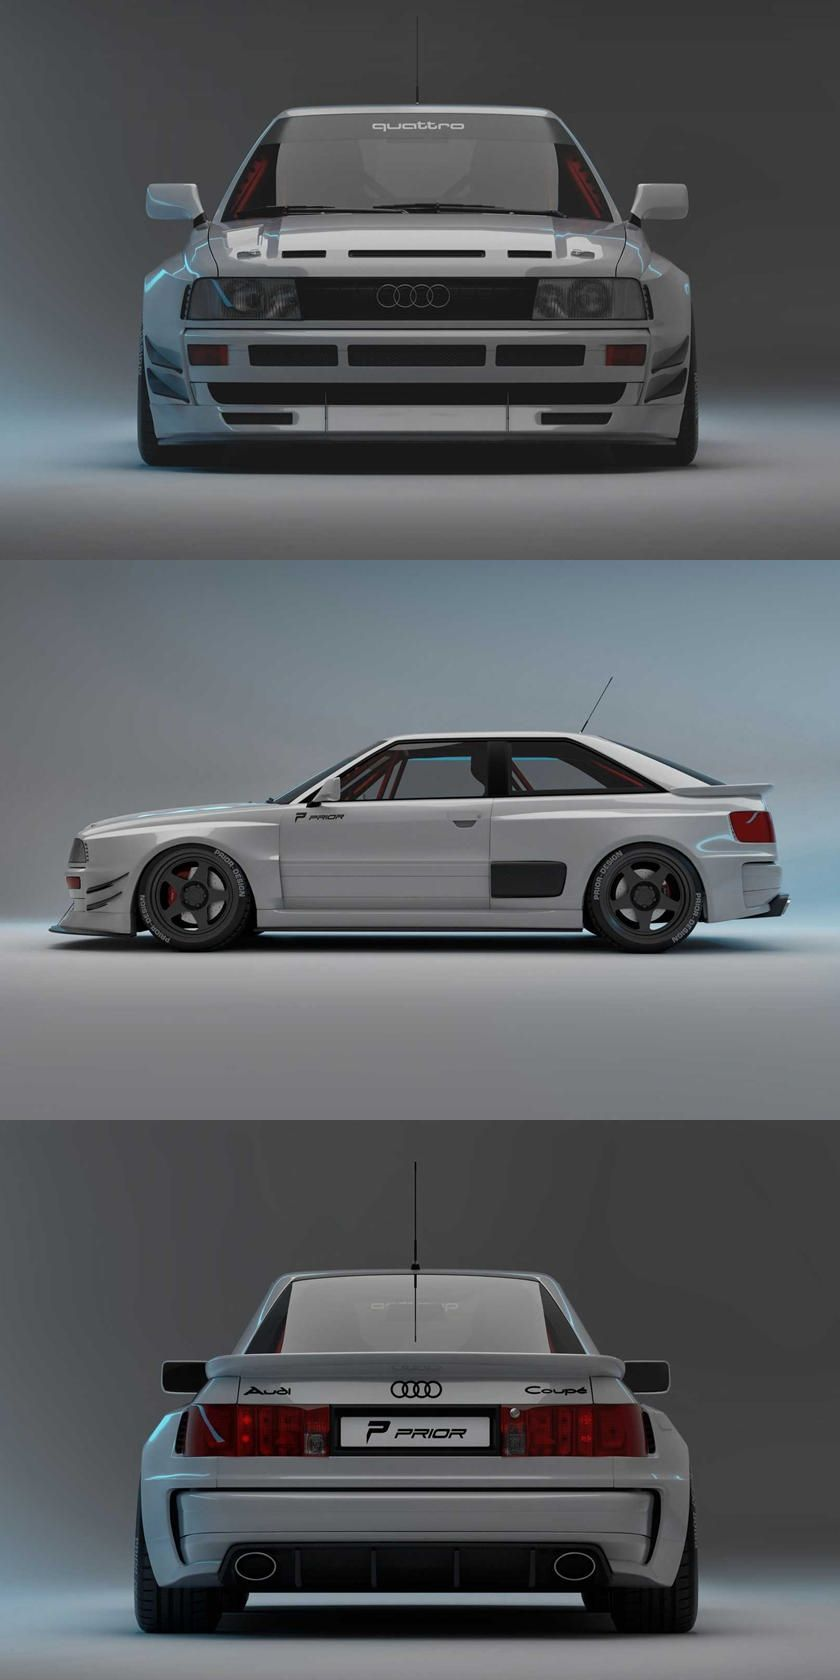 This Is The Audi Rs2 Coupe That Audi Never Made This Thing Looks Awesome Audi Audi Coupe Coupe